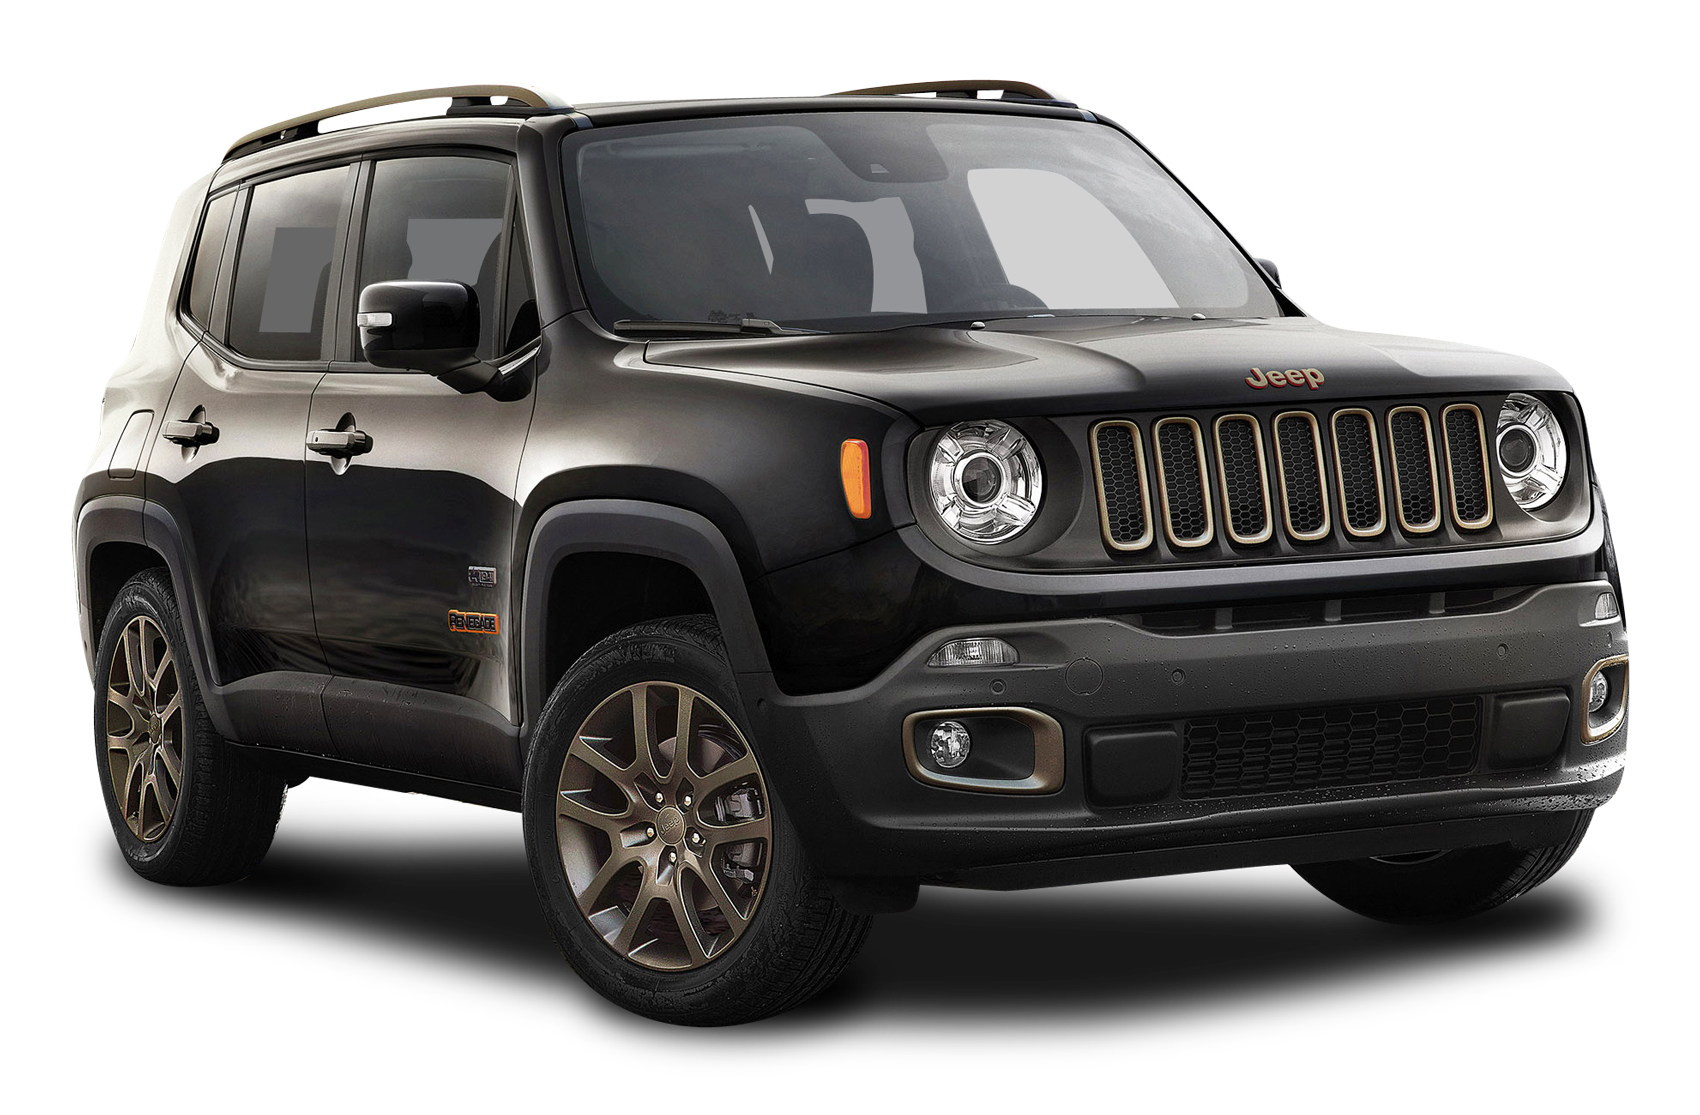 Download Black Jeep Renegade Car PNG Image for Free.